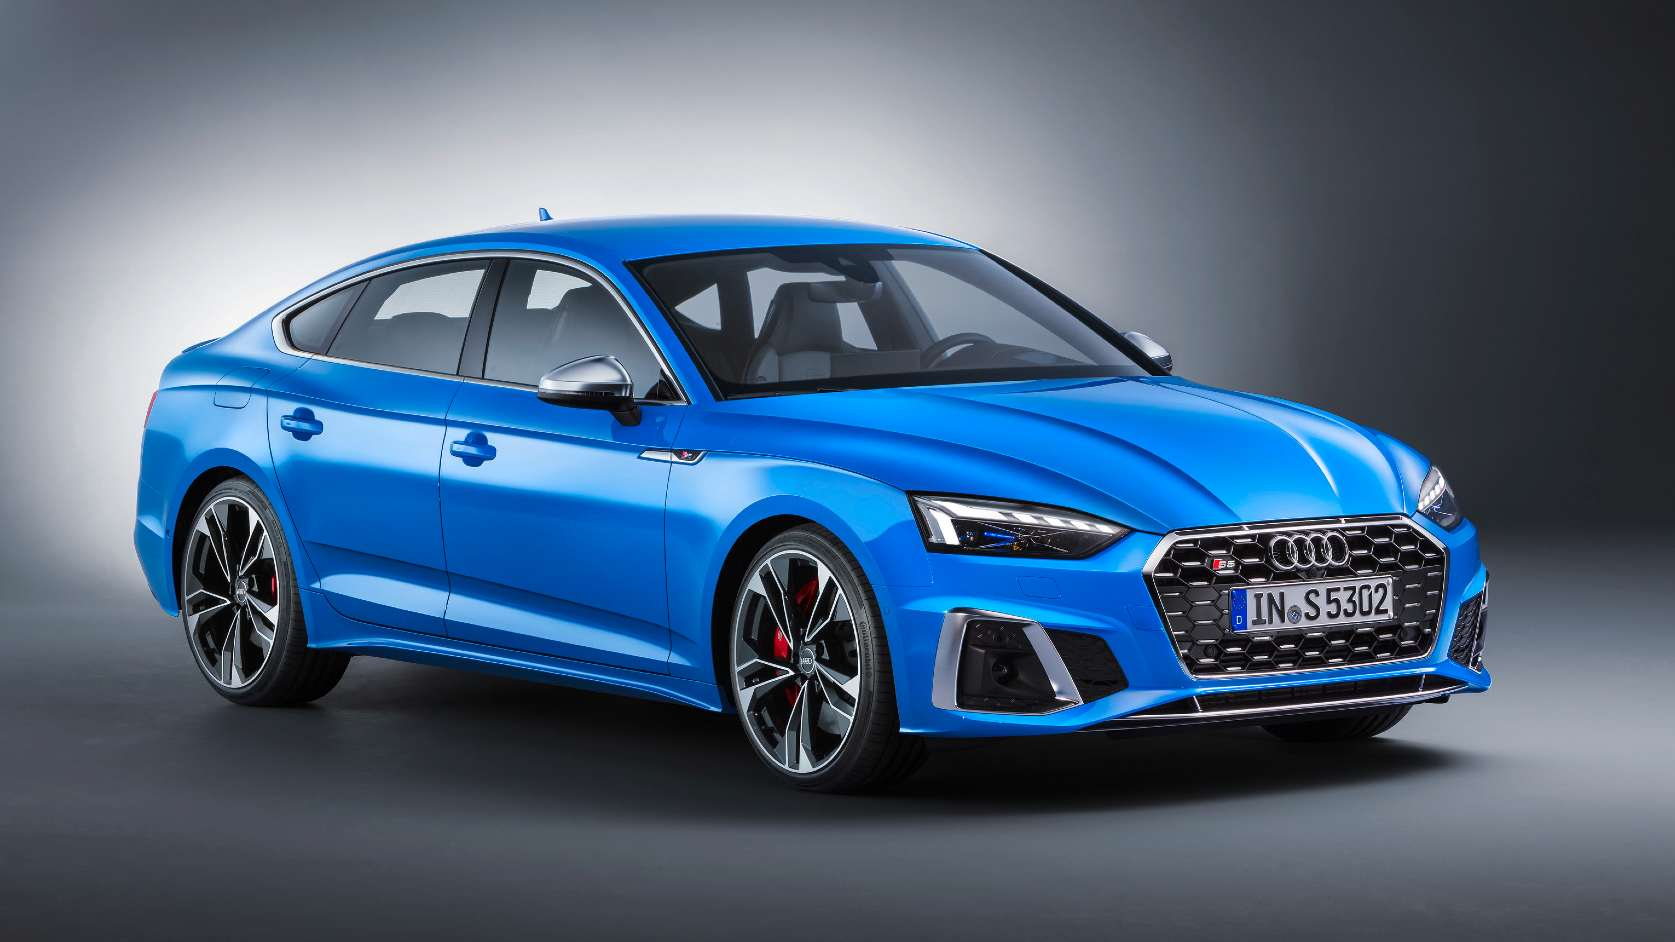 Audi S5 Sportback facelift launched in India, priced at Rs 79.06 lakh